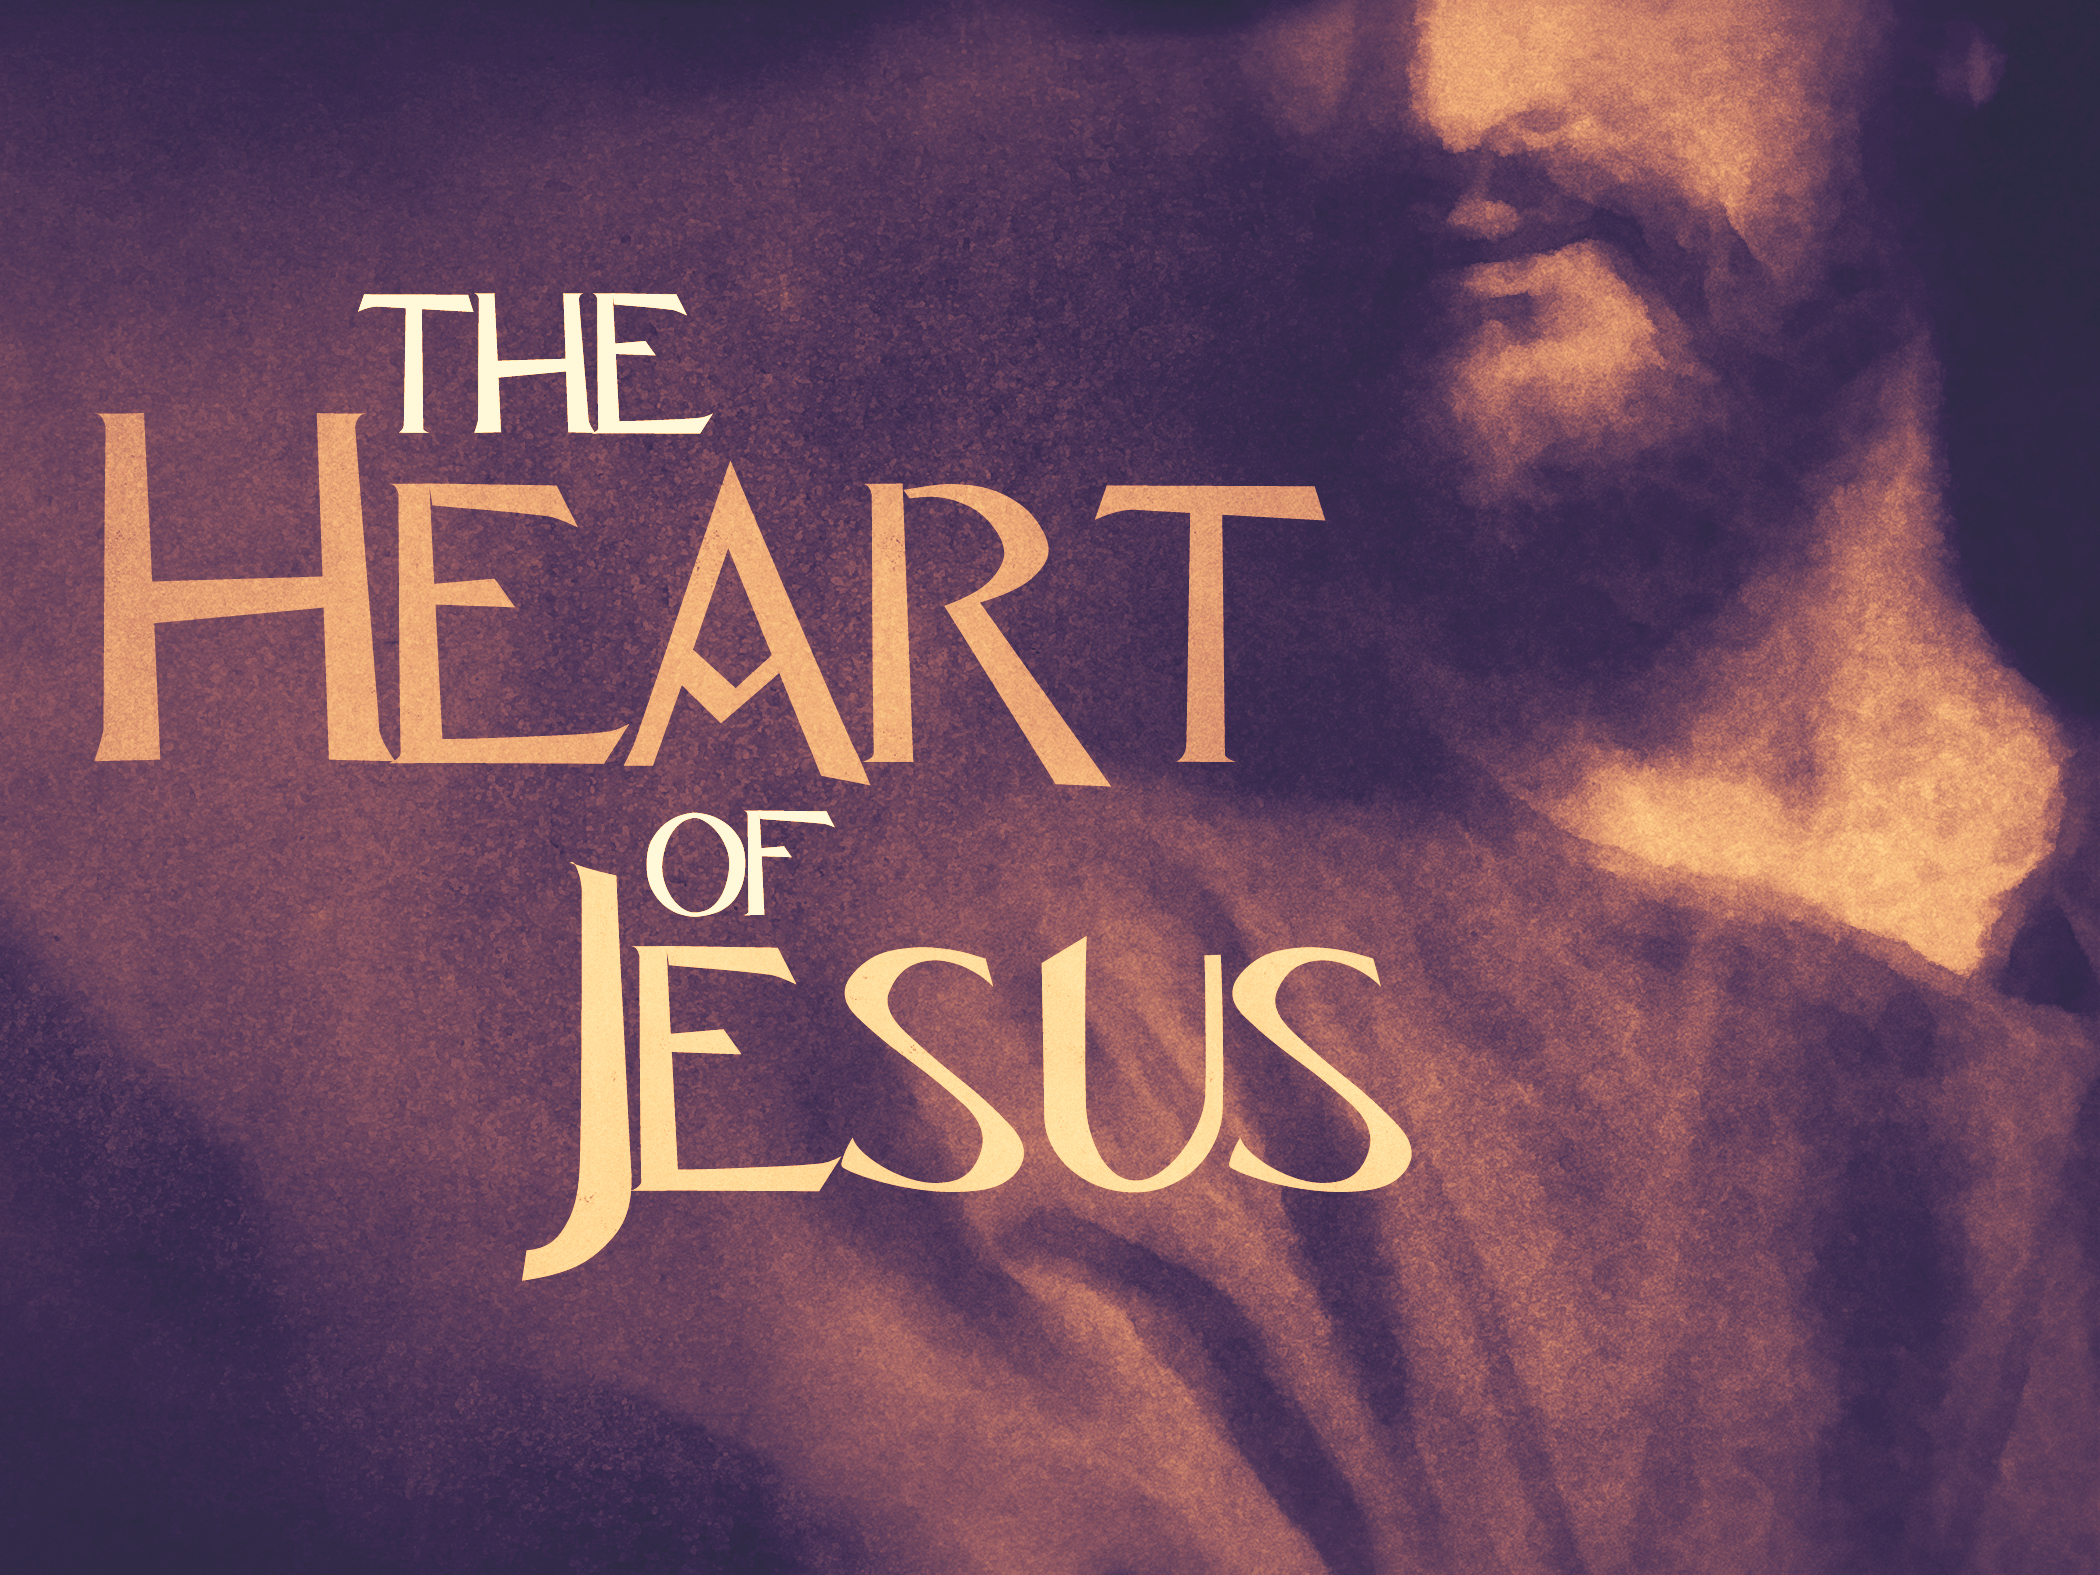 The Heart of Jesus - How can we as Christians maintain a heart like Jesus?